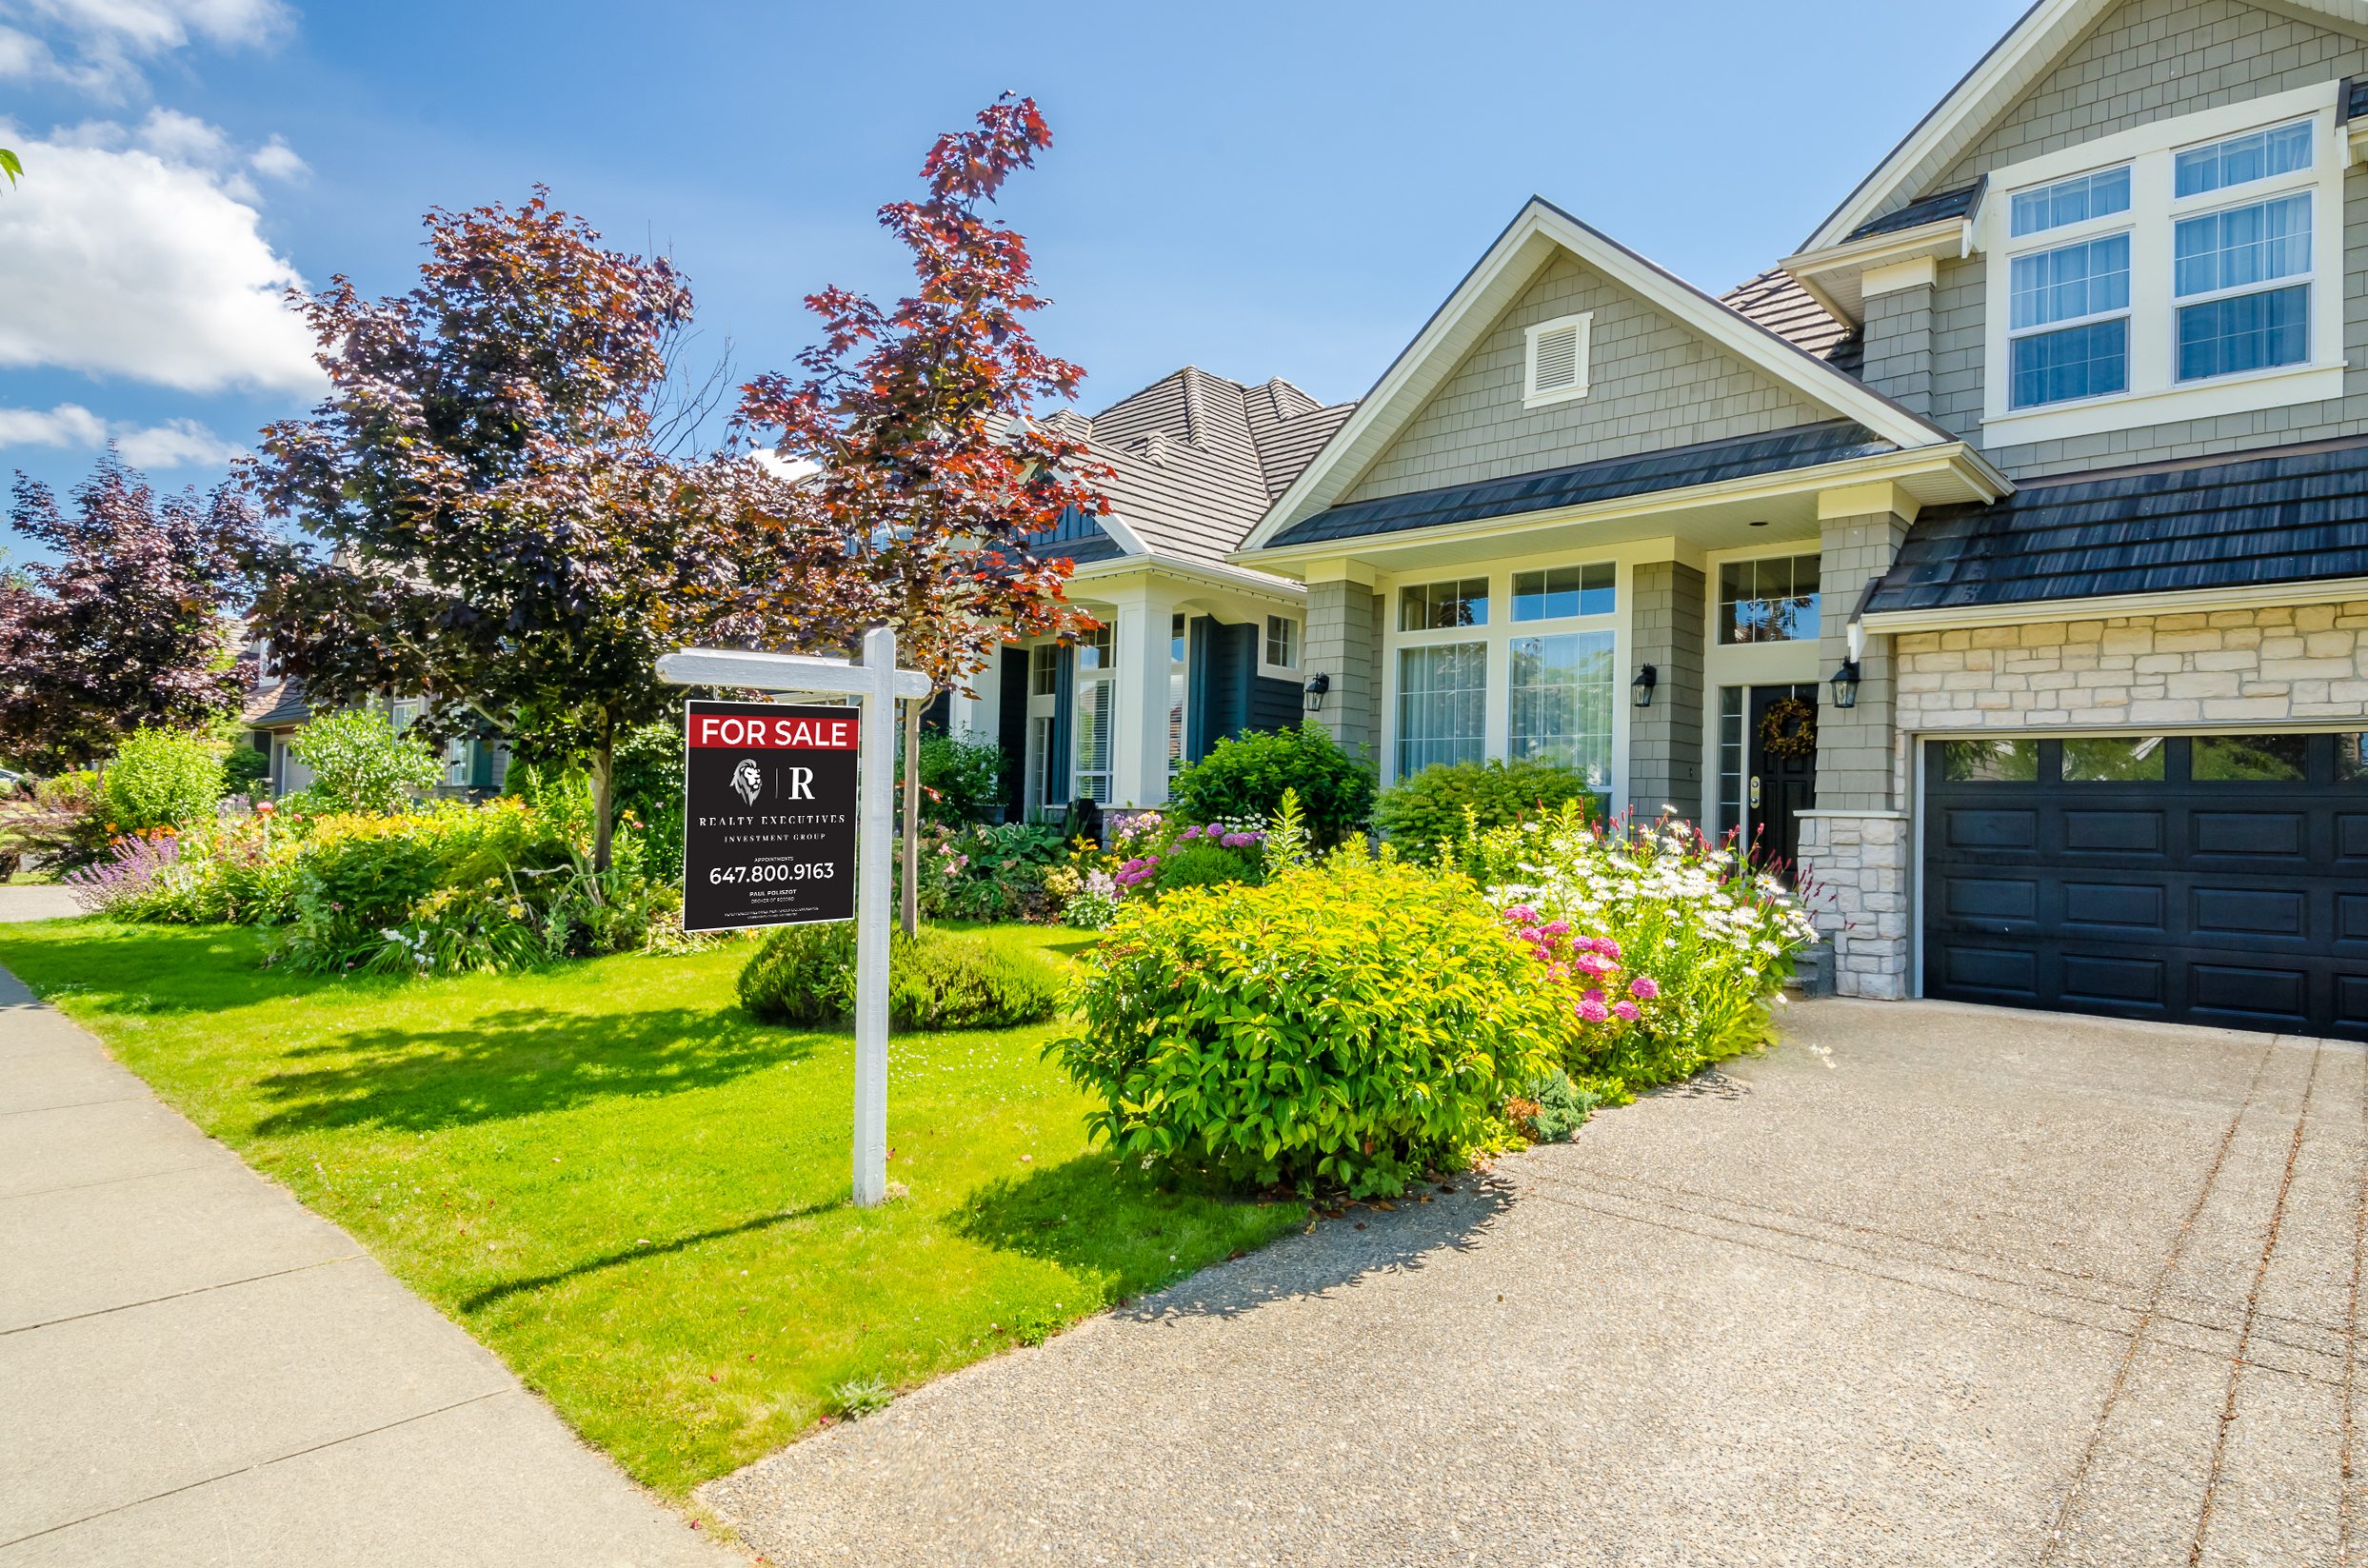 selling your home - Rexig